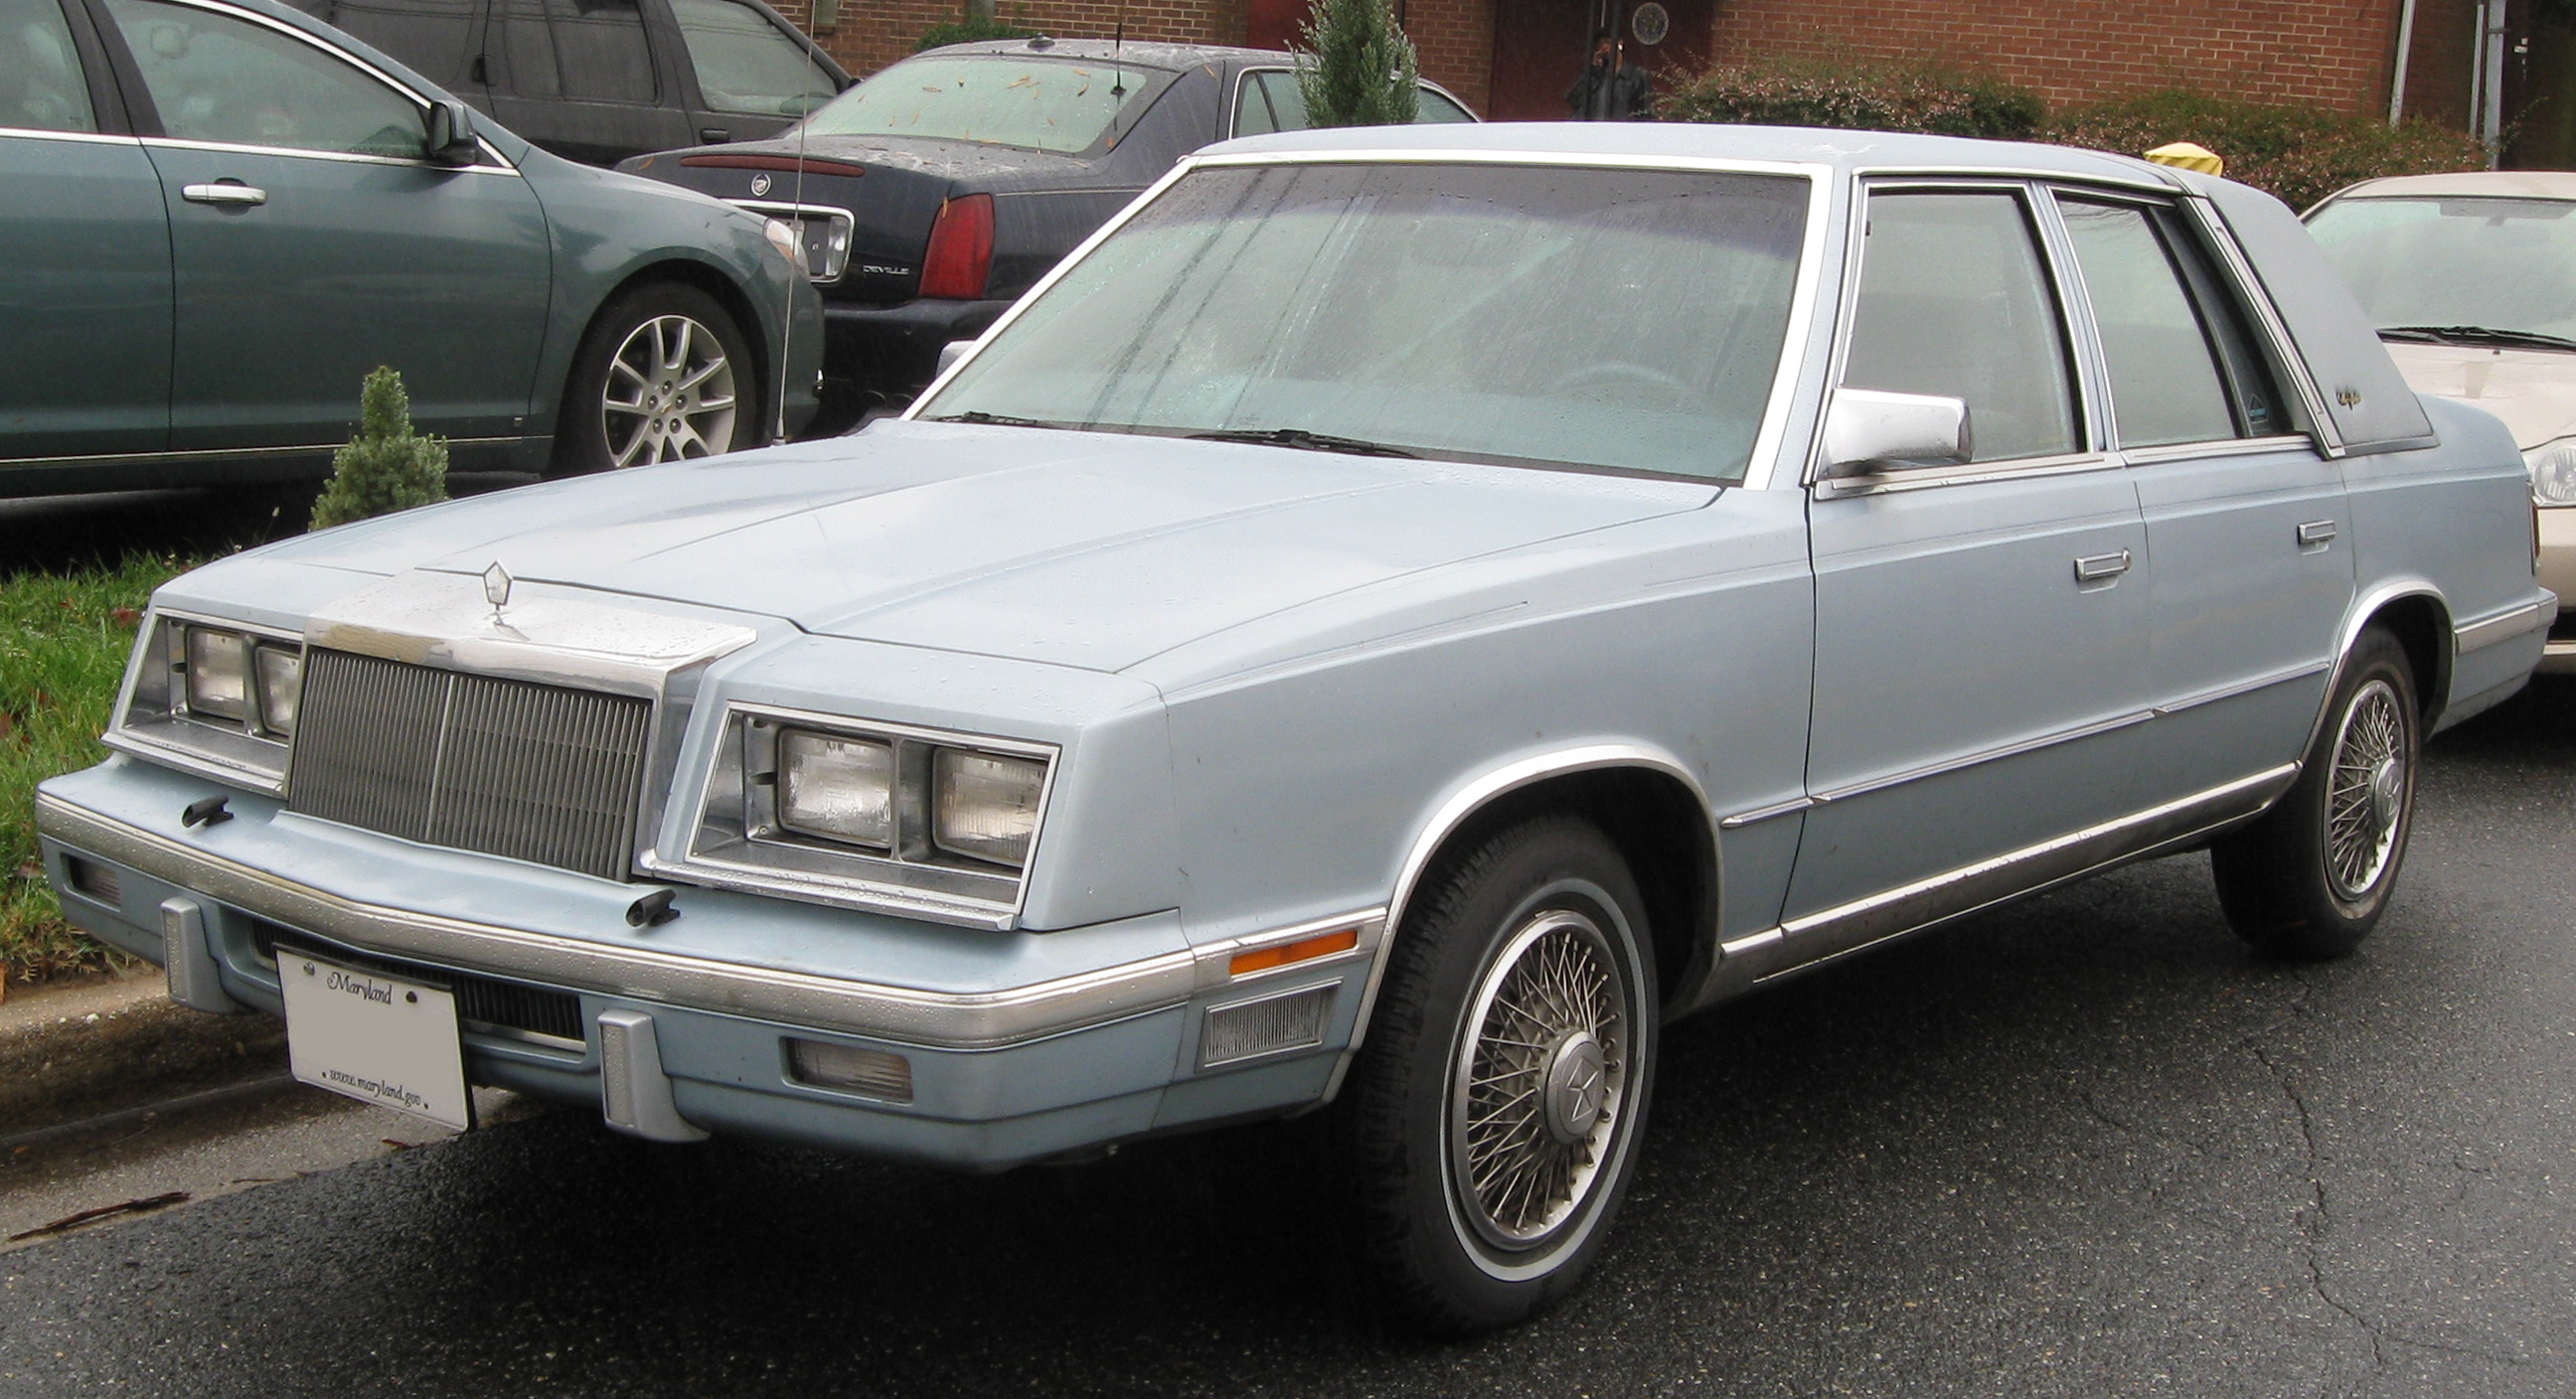 1985 Chrysler New Yorker Information And Photos Momentcar